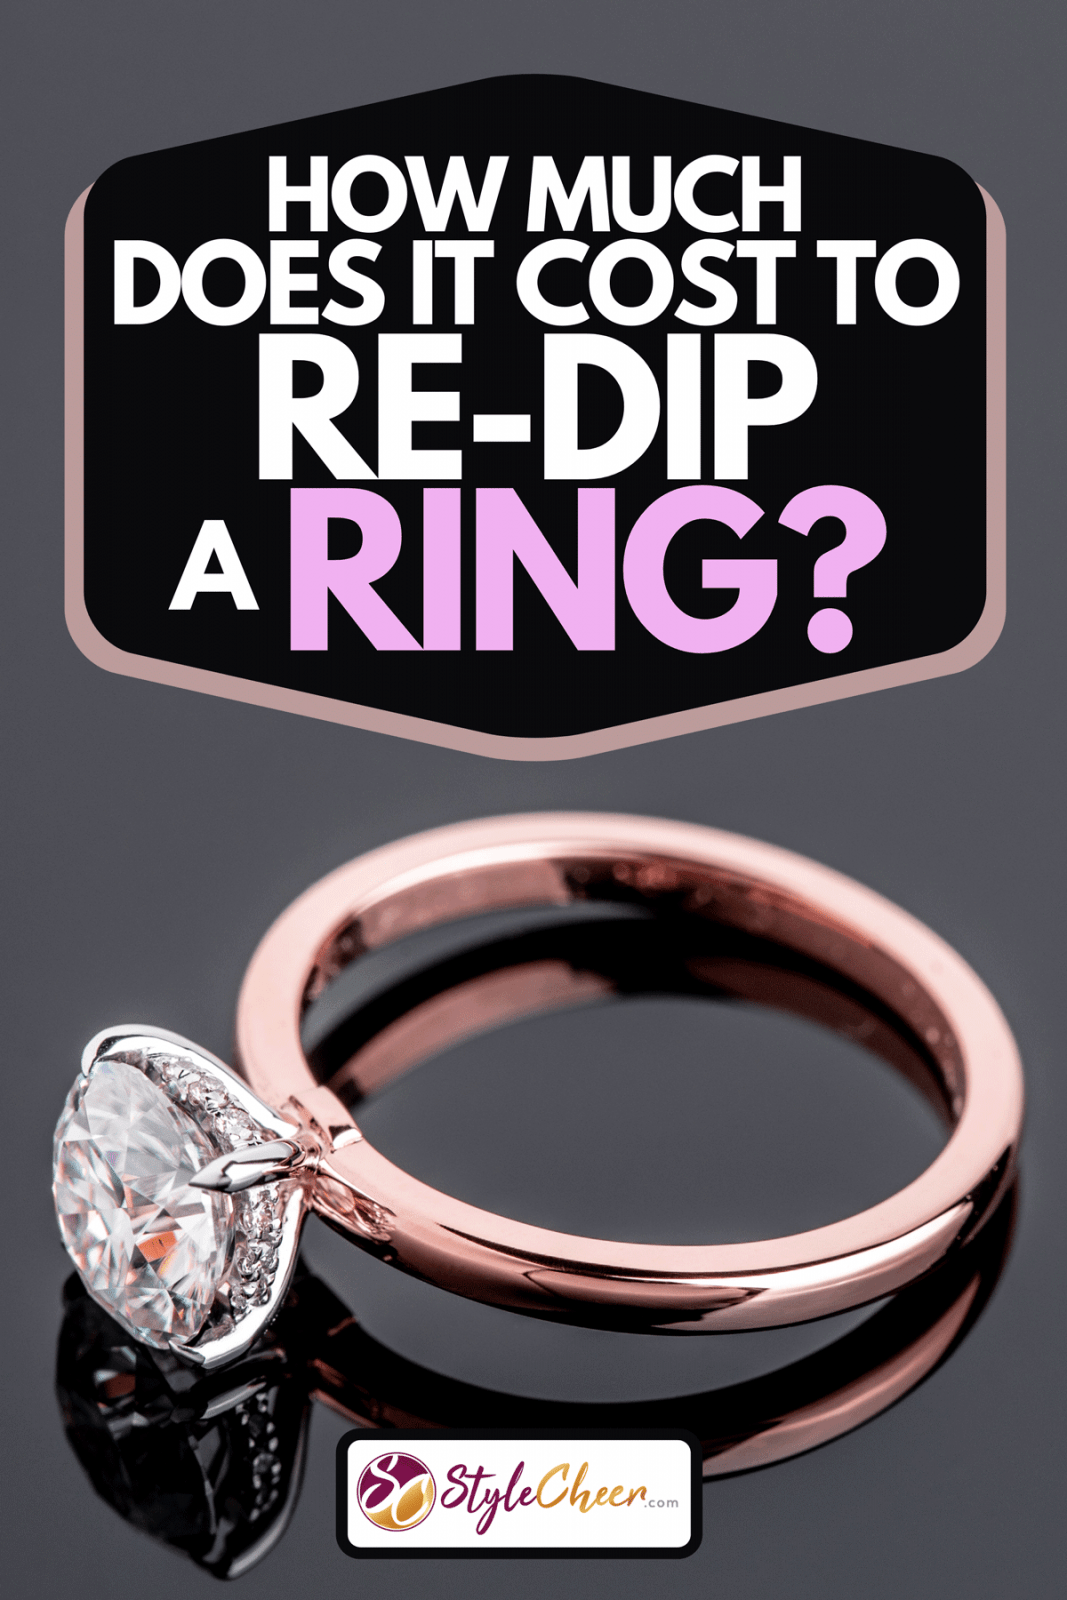 Rose gold diamond engagement jewelry ring, How Much Does It Cost To Re-Dip A Ring?